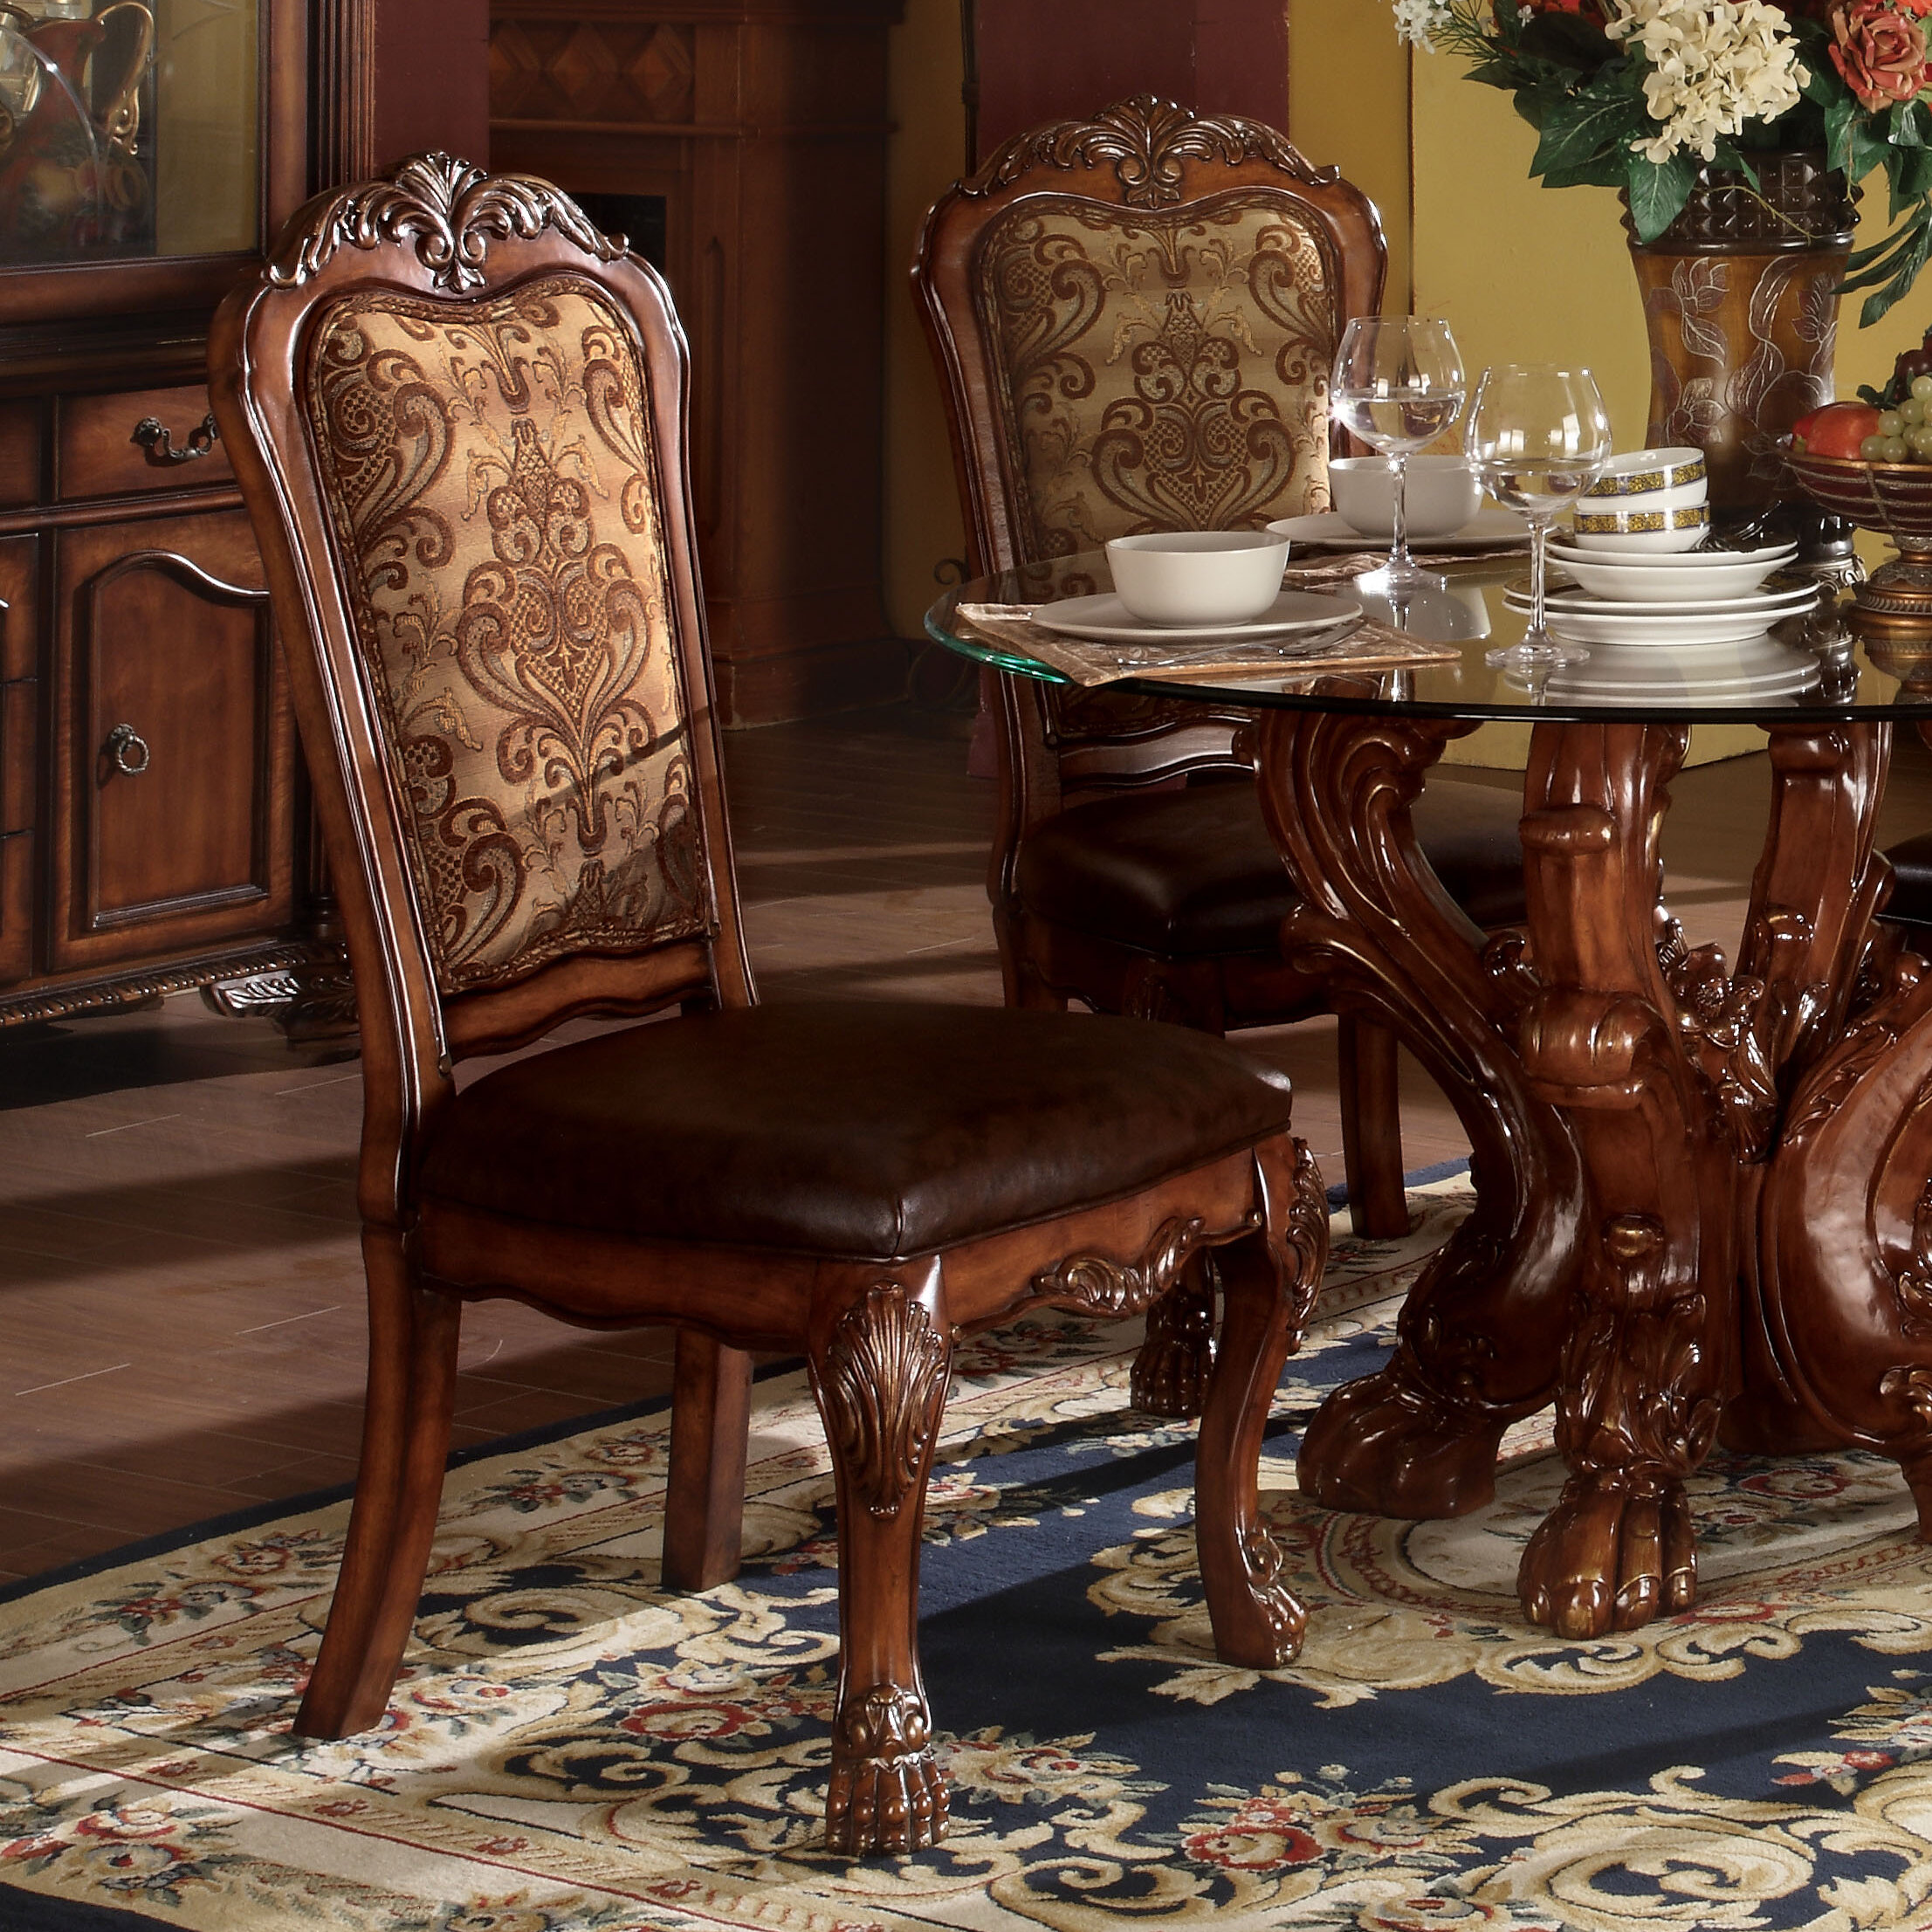 Tremendous Welliver Traditional Upholstered Dining Chair Squirreltailoven Fun Painted Chair Ideas Images Squirreltailovenorg